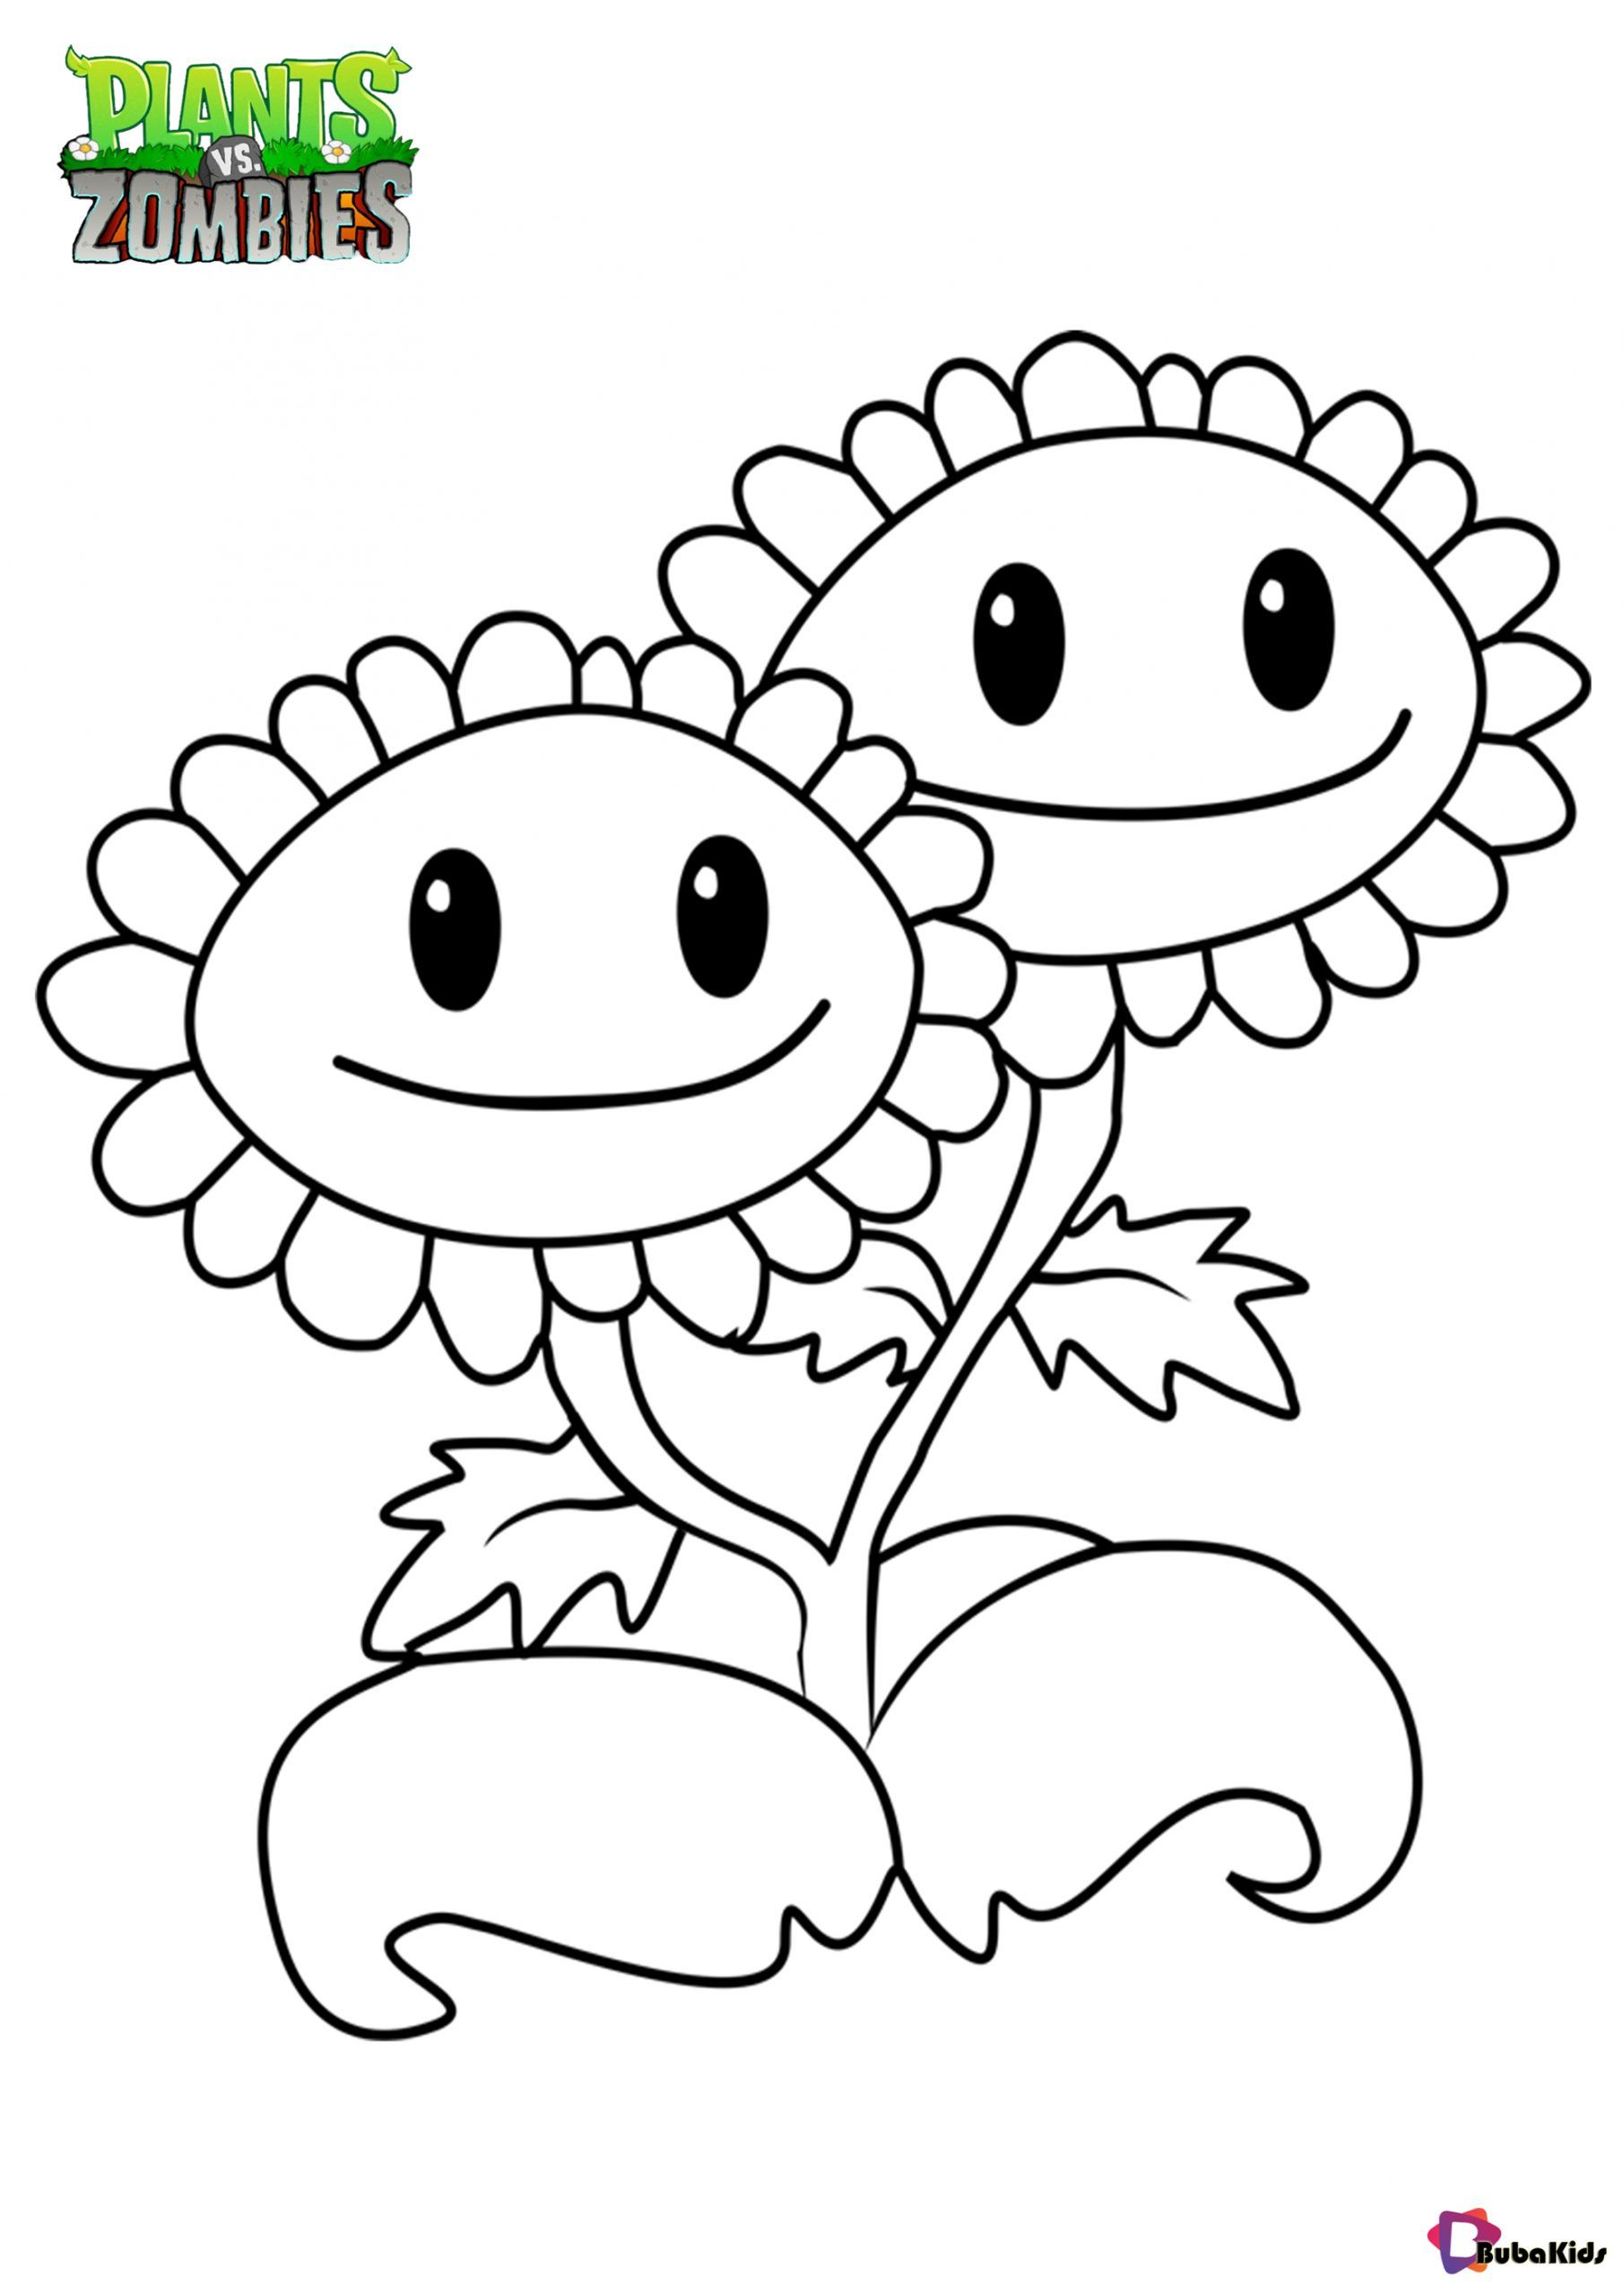 Plants Vs Zombies Twin Sunflower Coloring Page Collection Of Cartoon Coloring Pages Fo In 2020 Sunflower Coloring Pages Precious Moments Coloring Pages Coloring Pages